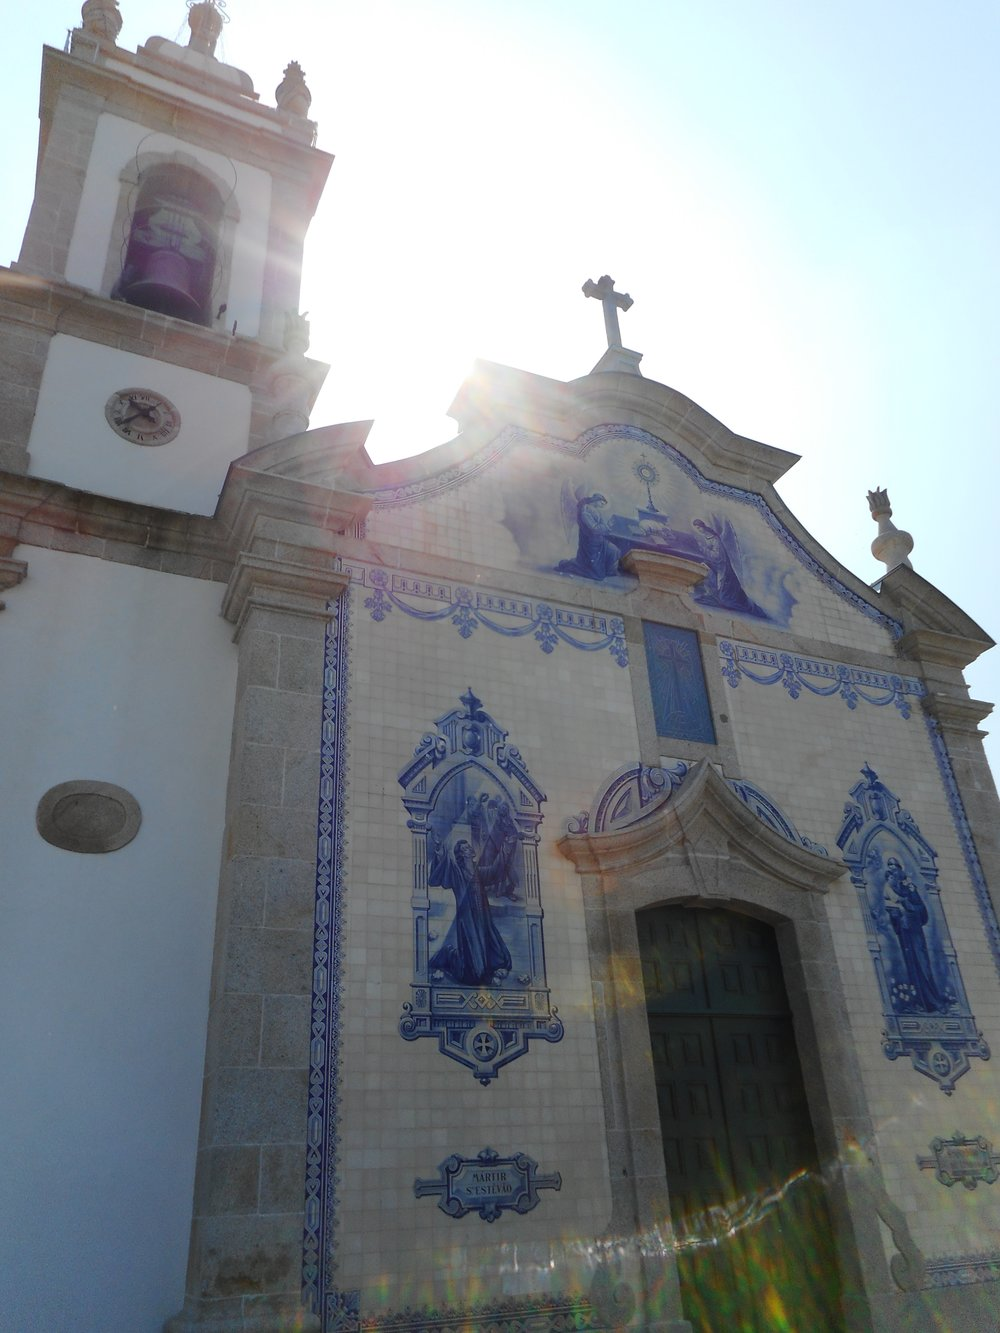 There were churches all along the Camino and each were so different from the last